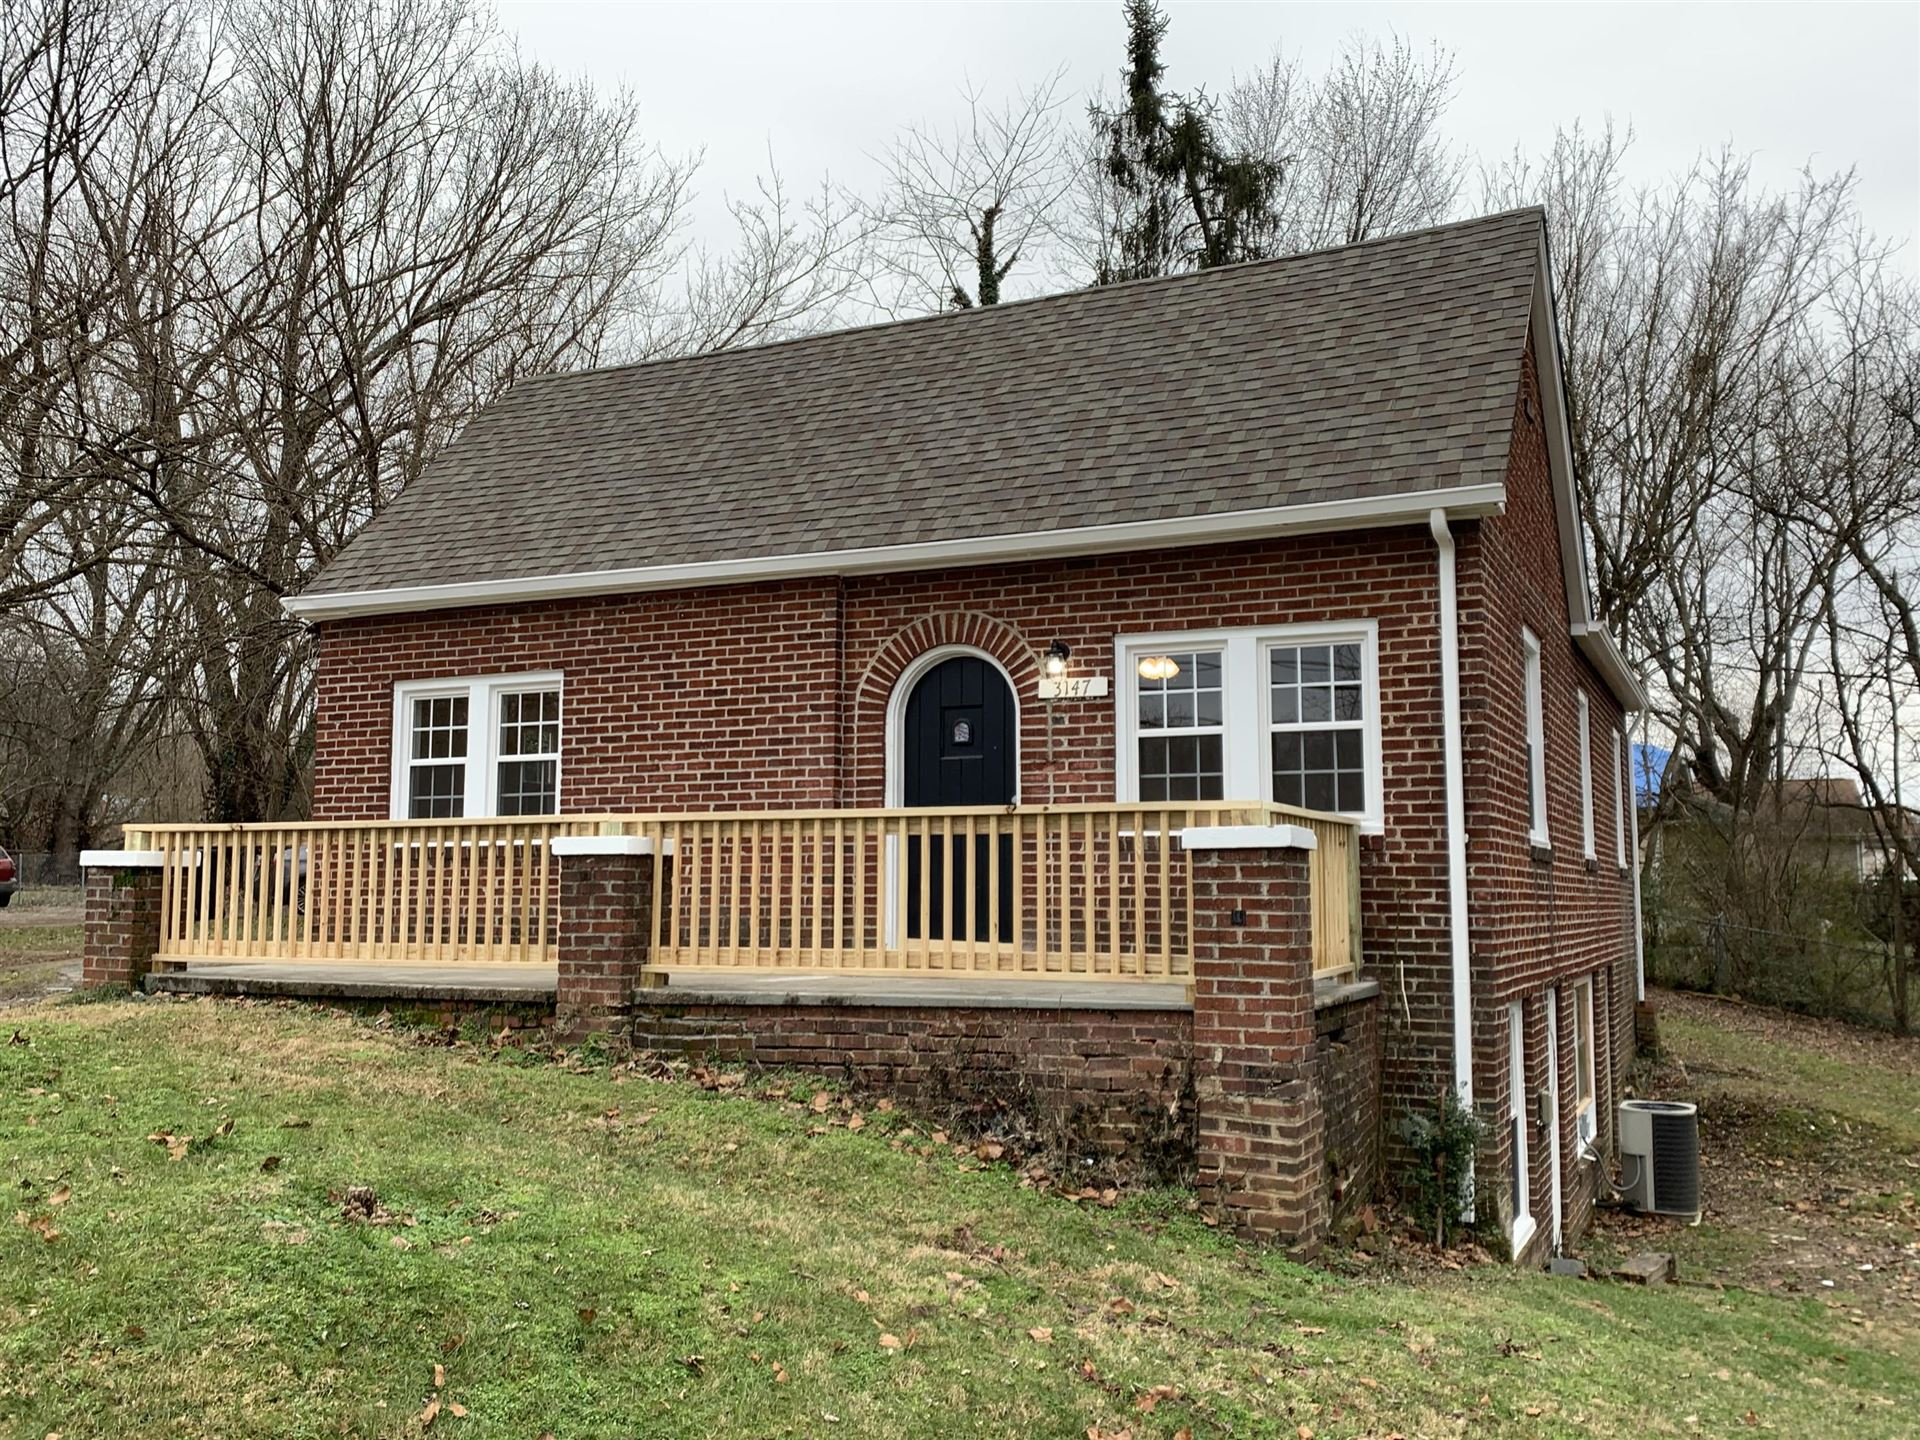 3147 Maxwell St, Knoxville, TN 37917 - MLS#: 1140393